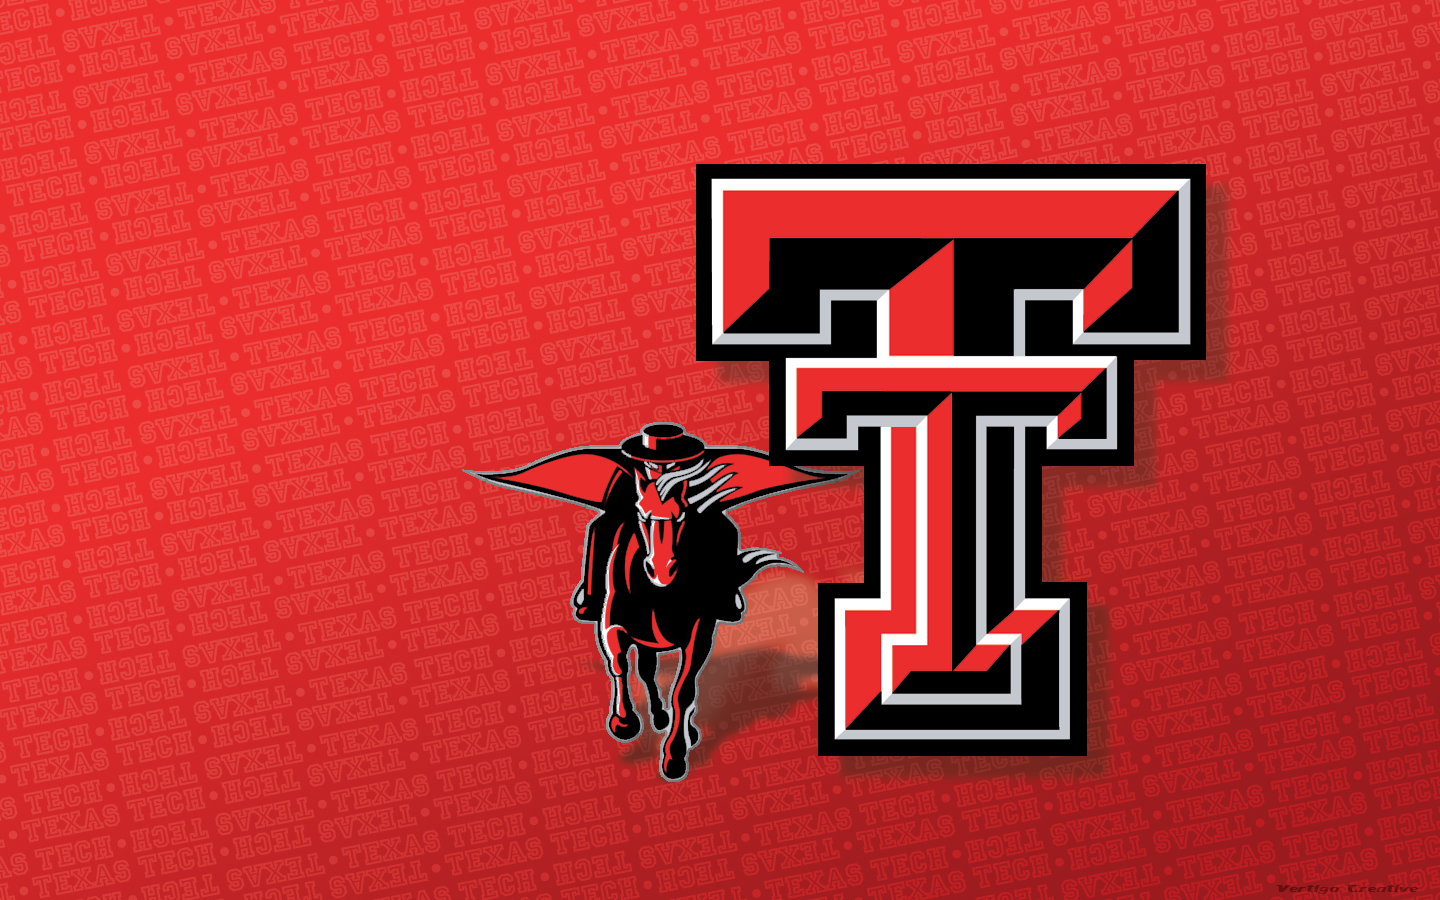 Texas Tech Logo : Desktop and mobile wallpaper : Wallippo